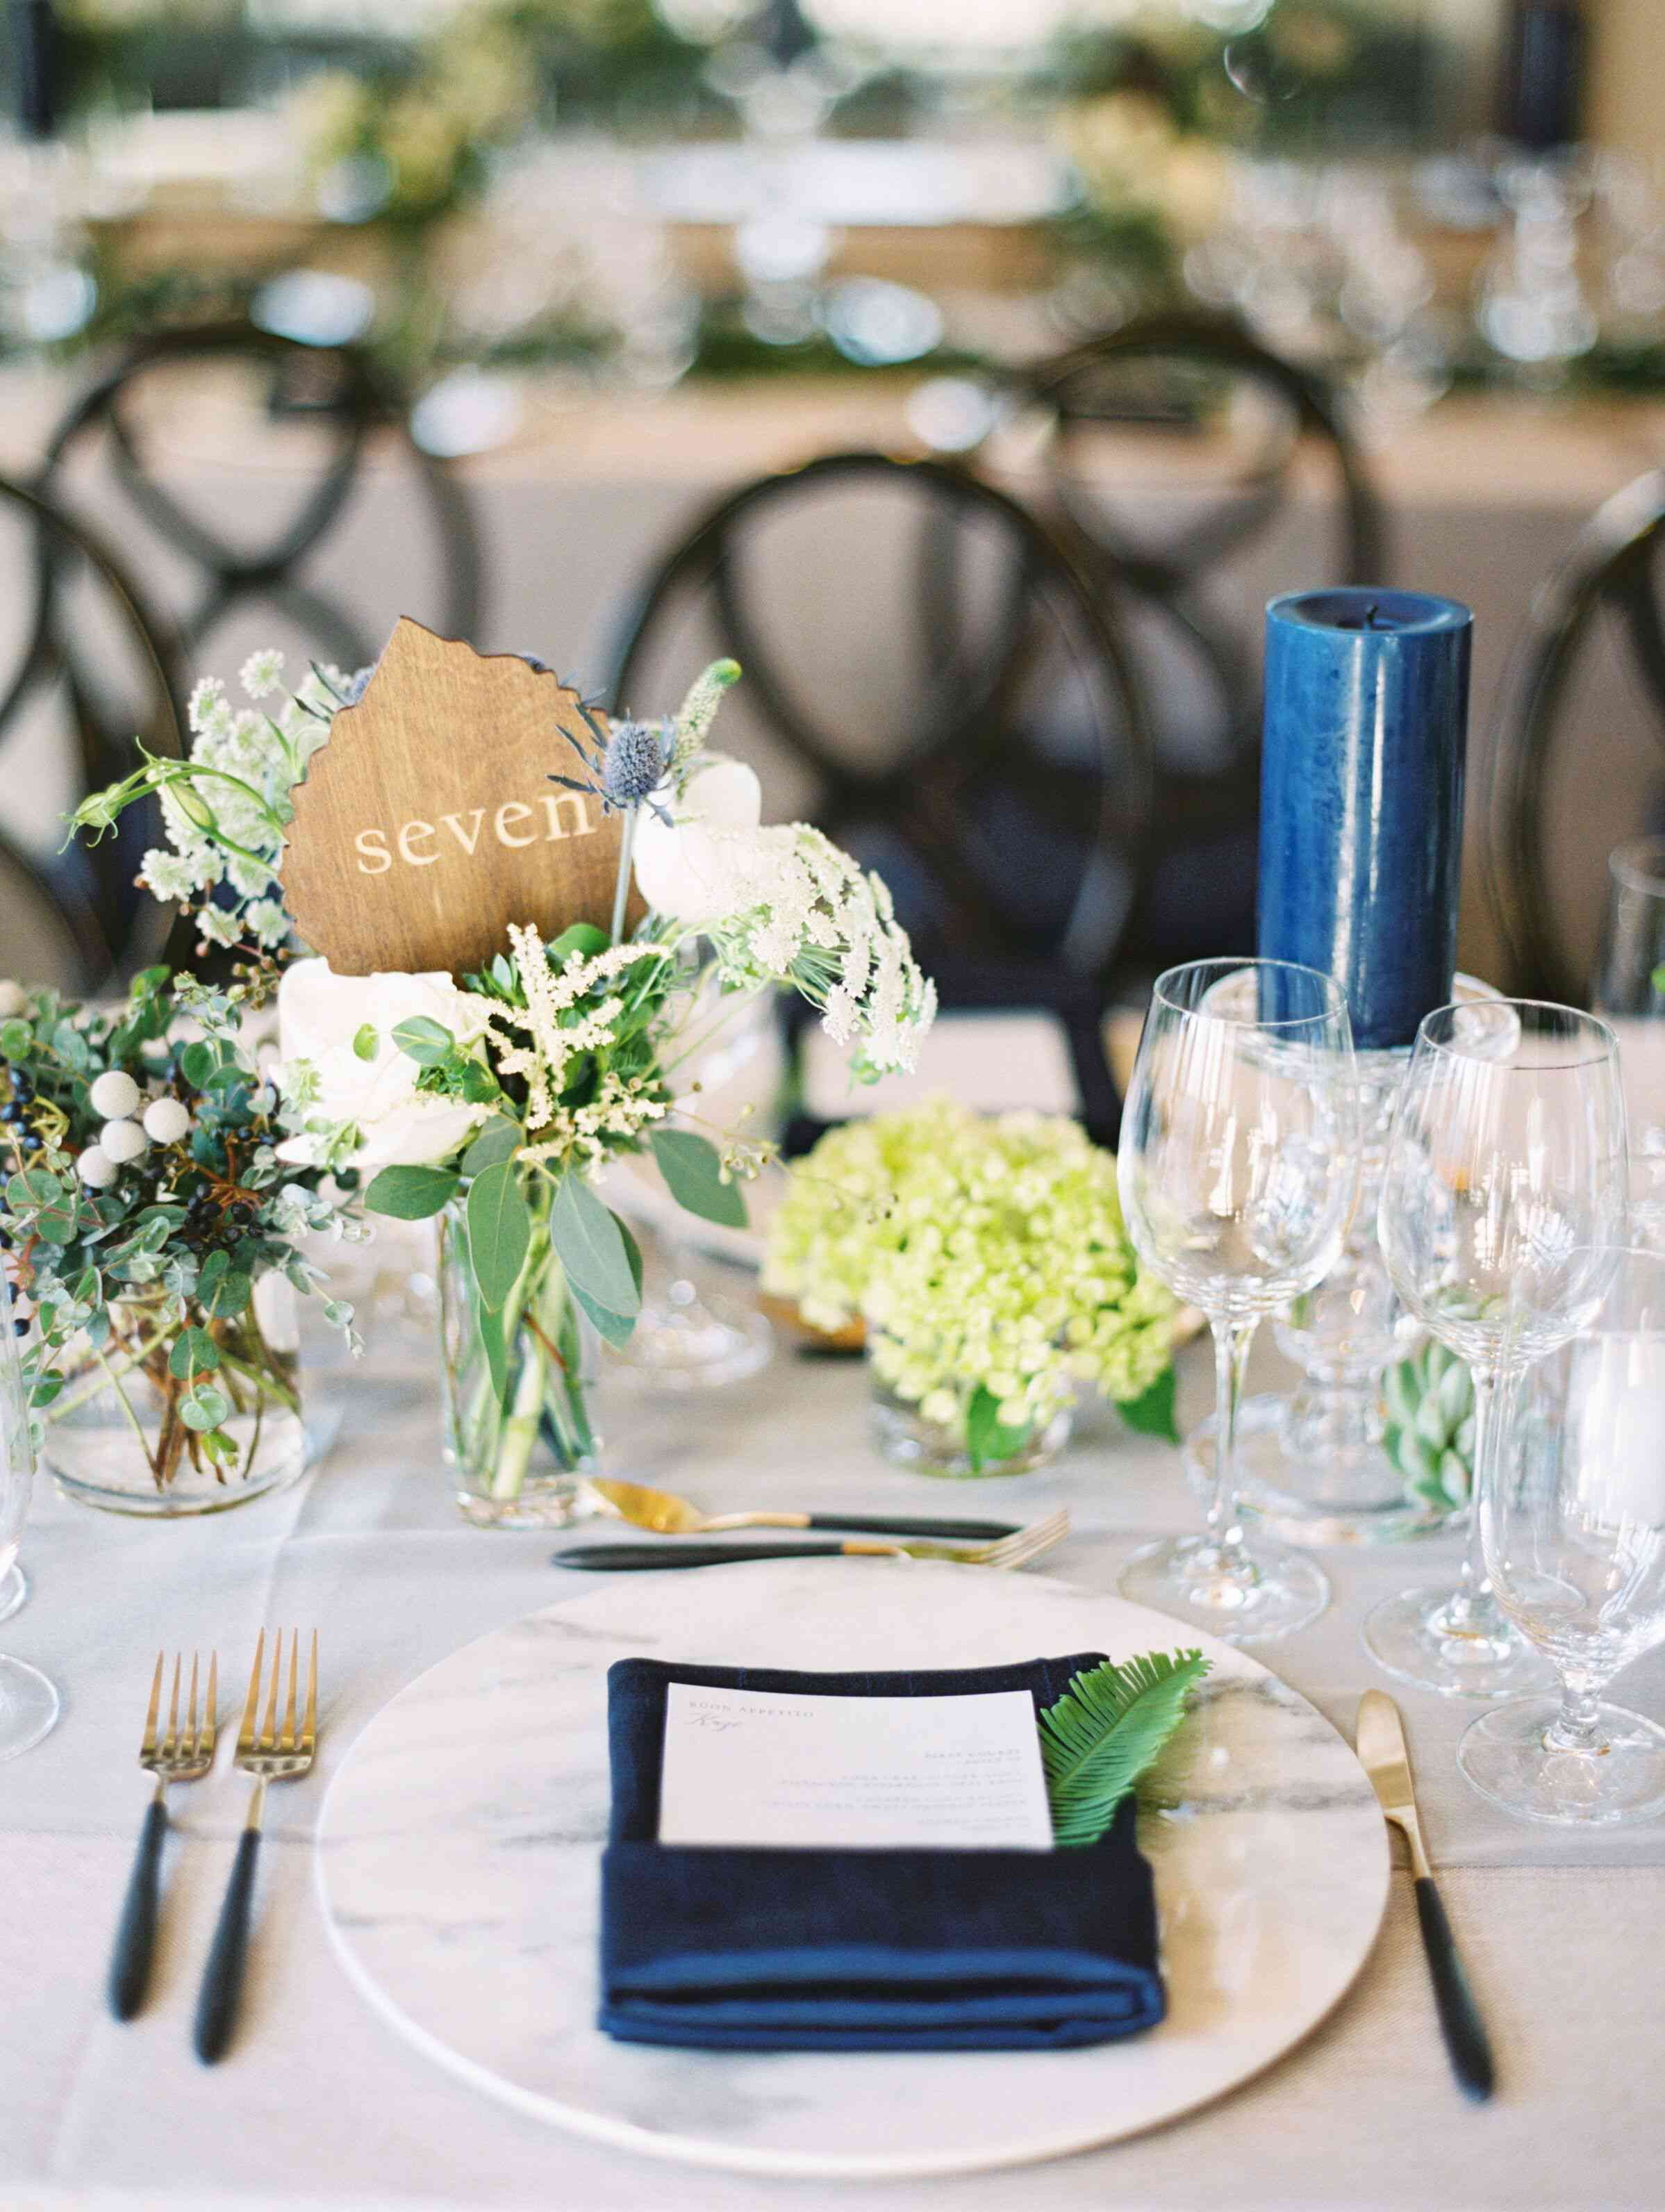 Using wooden leaf in a vase as a table number